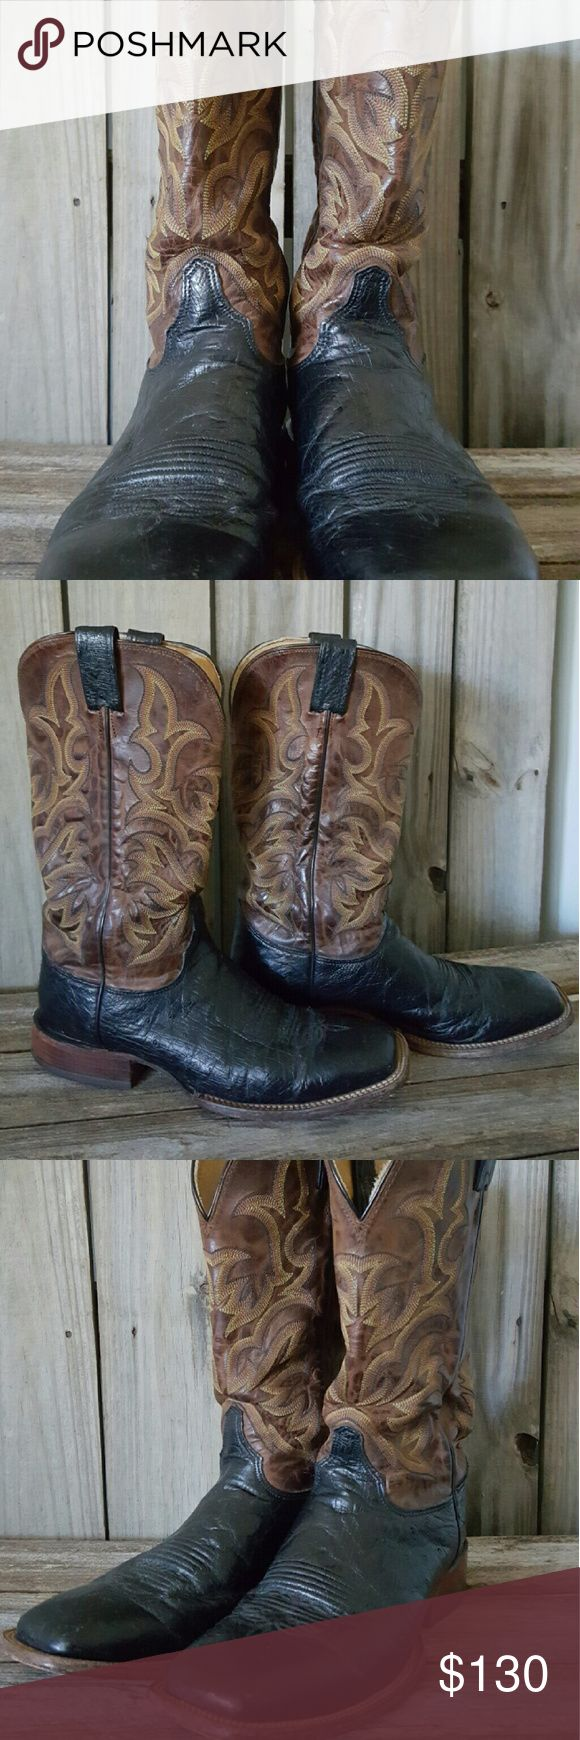 Justin Square Toe Boot Ostrich Men's Pre-owned Justin Square Toe Full Quill Ostrich Boots.  Size 10D Justin Boots Shoes Boots